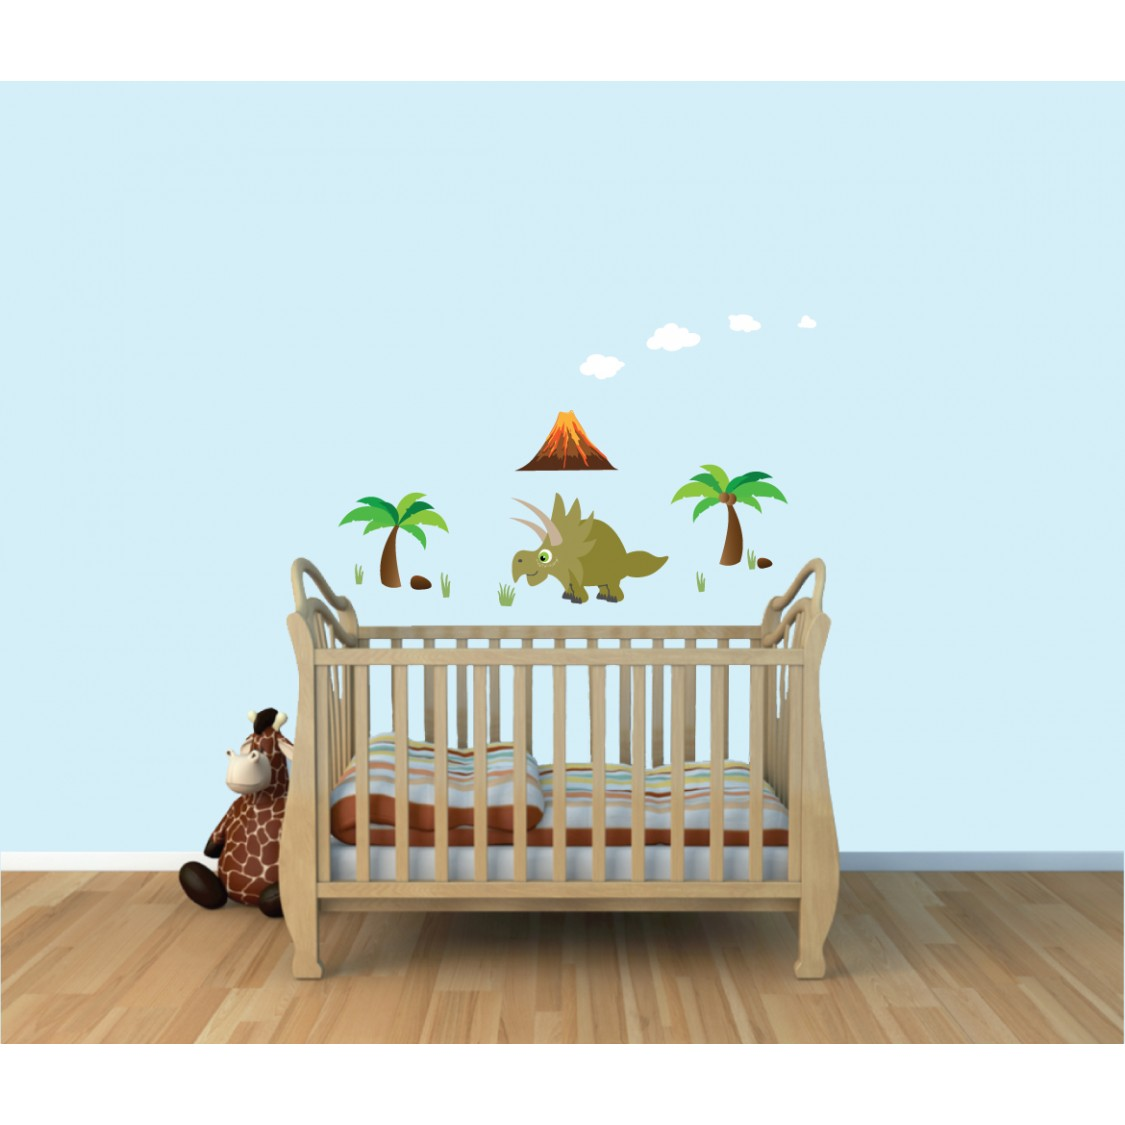 Large Wall Decal With Dinosaur Wall Murals For Play Rooms